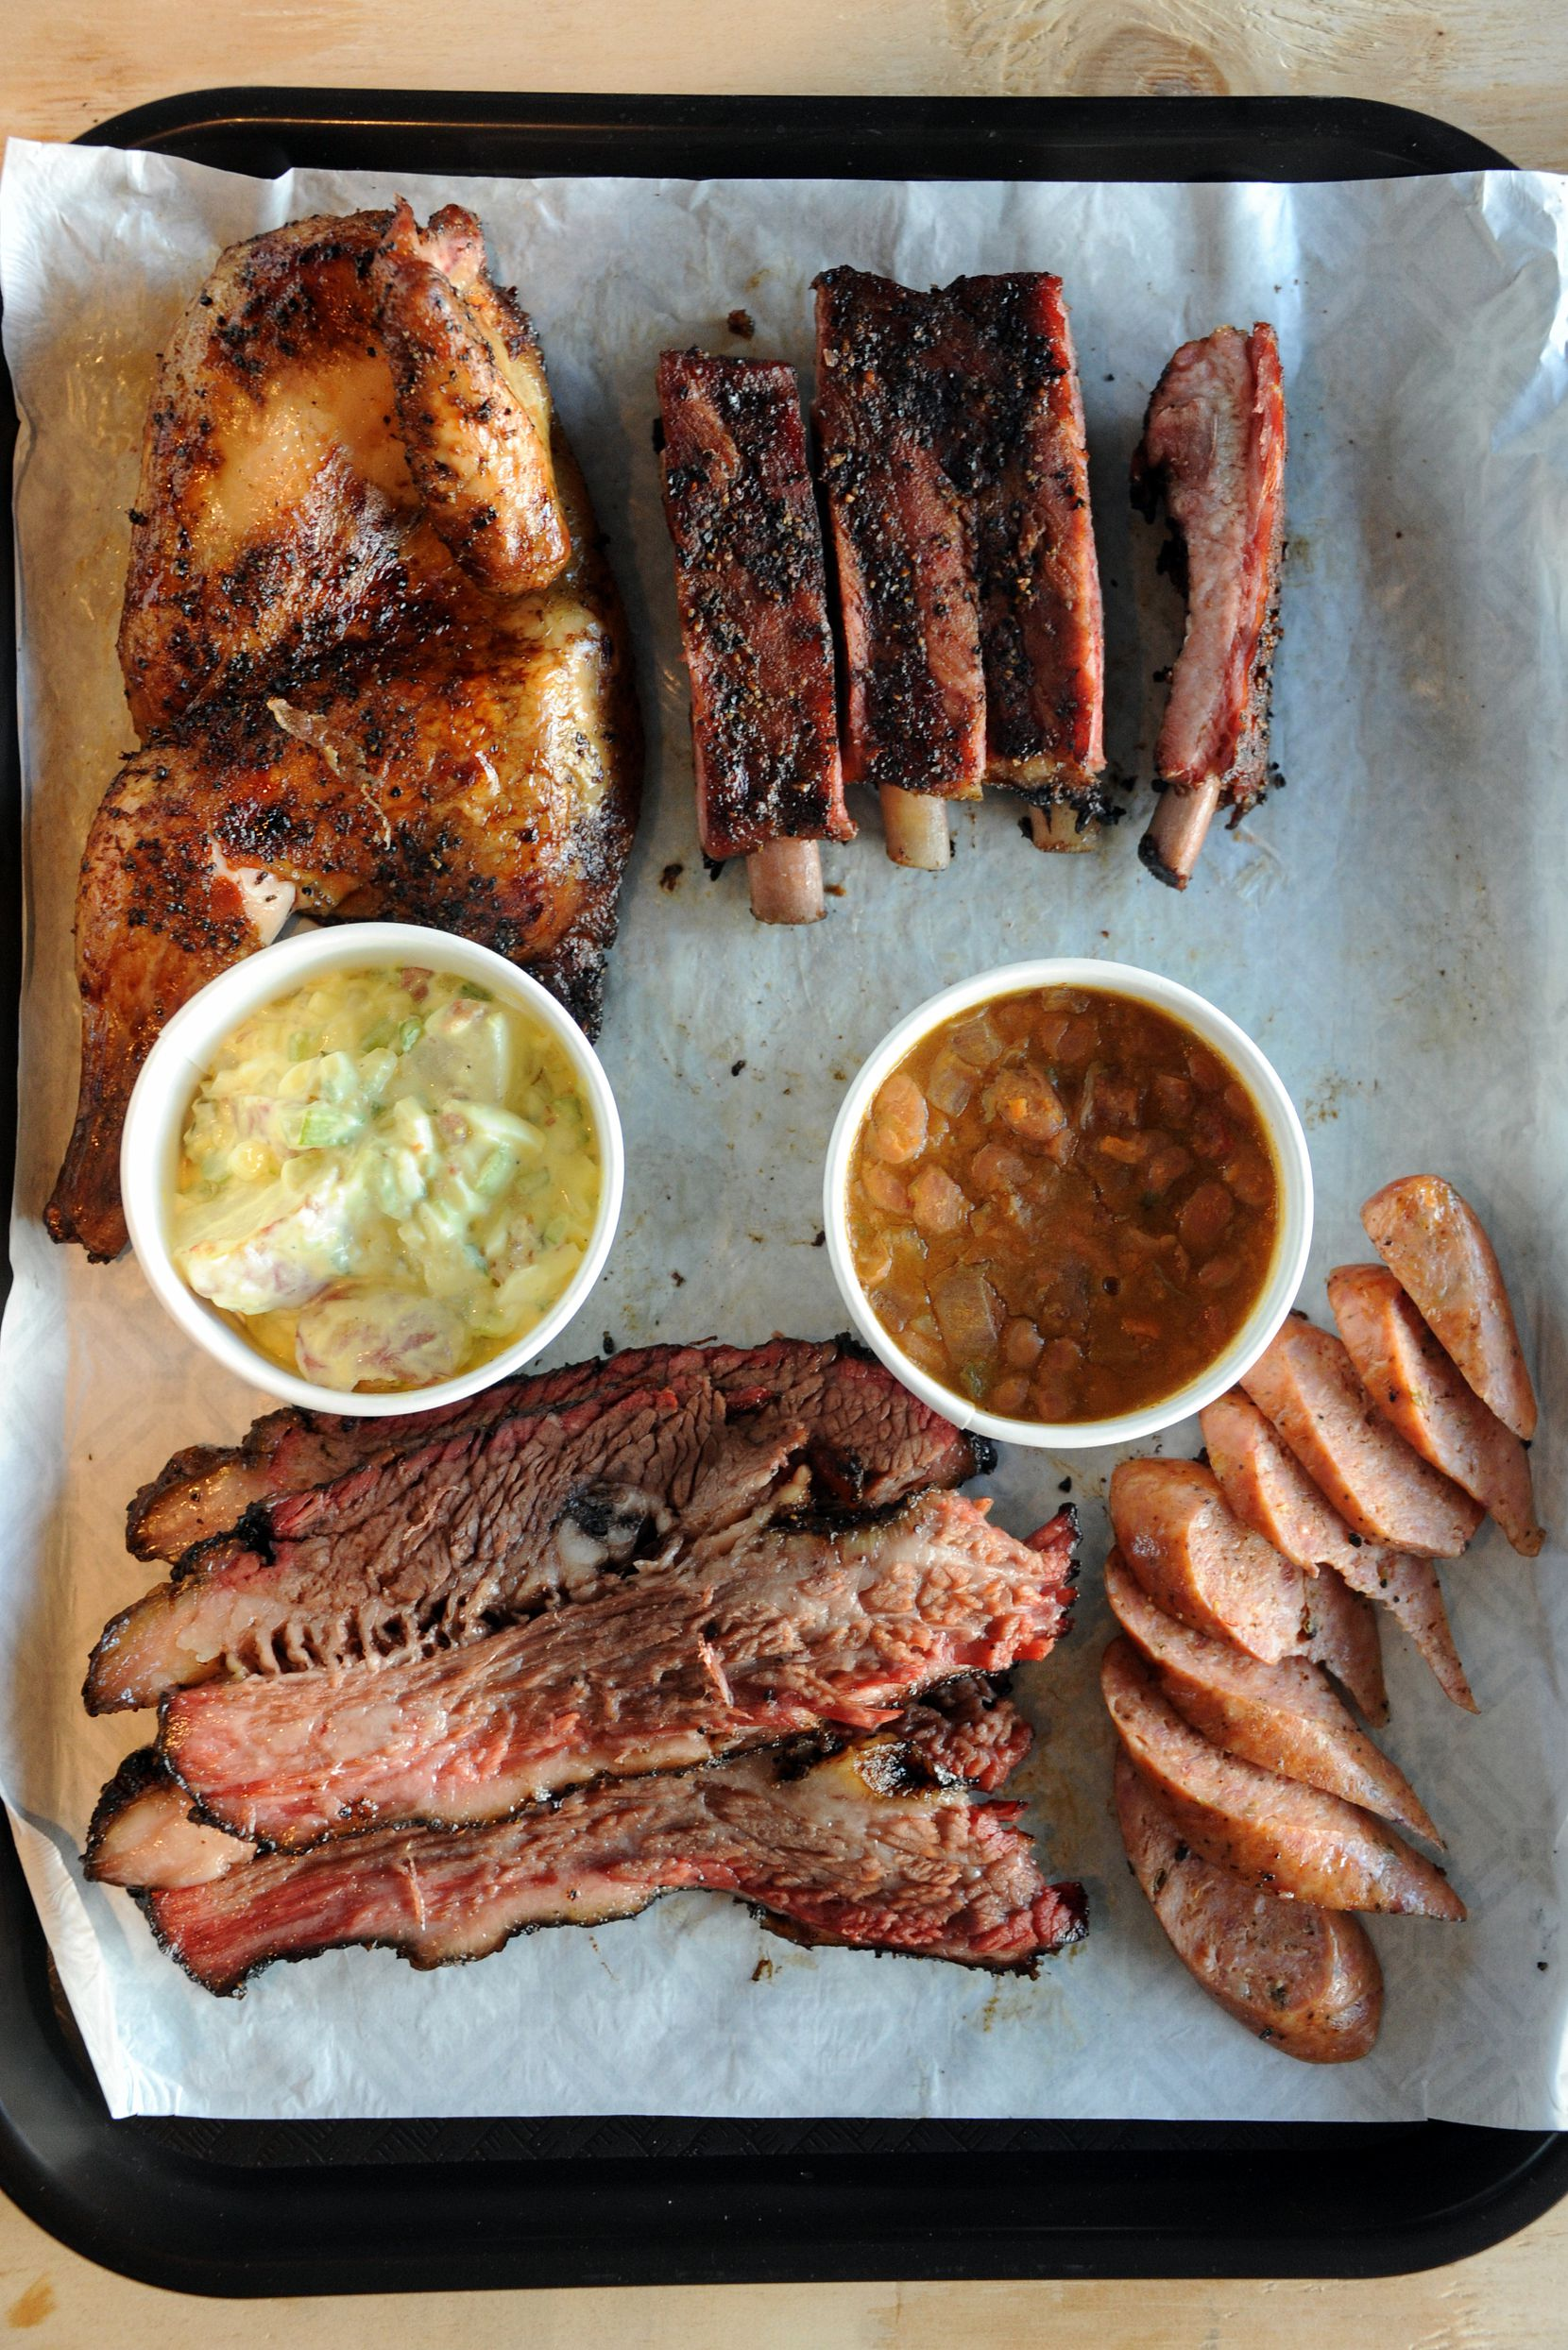 Guests can choose from brisket, chicken, ribs, sausage and turkey with sides like potato salad, beans, coleslaw and mac n' cheese at Ten 50 BBQ.